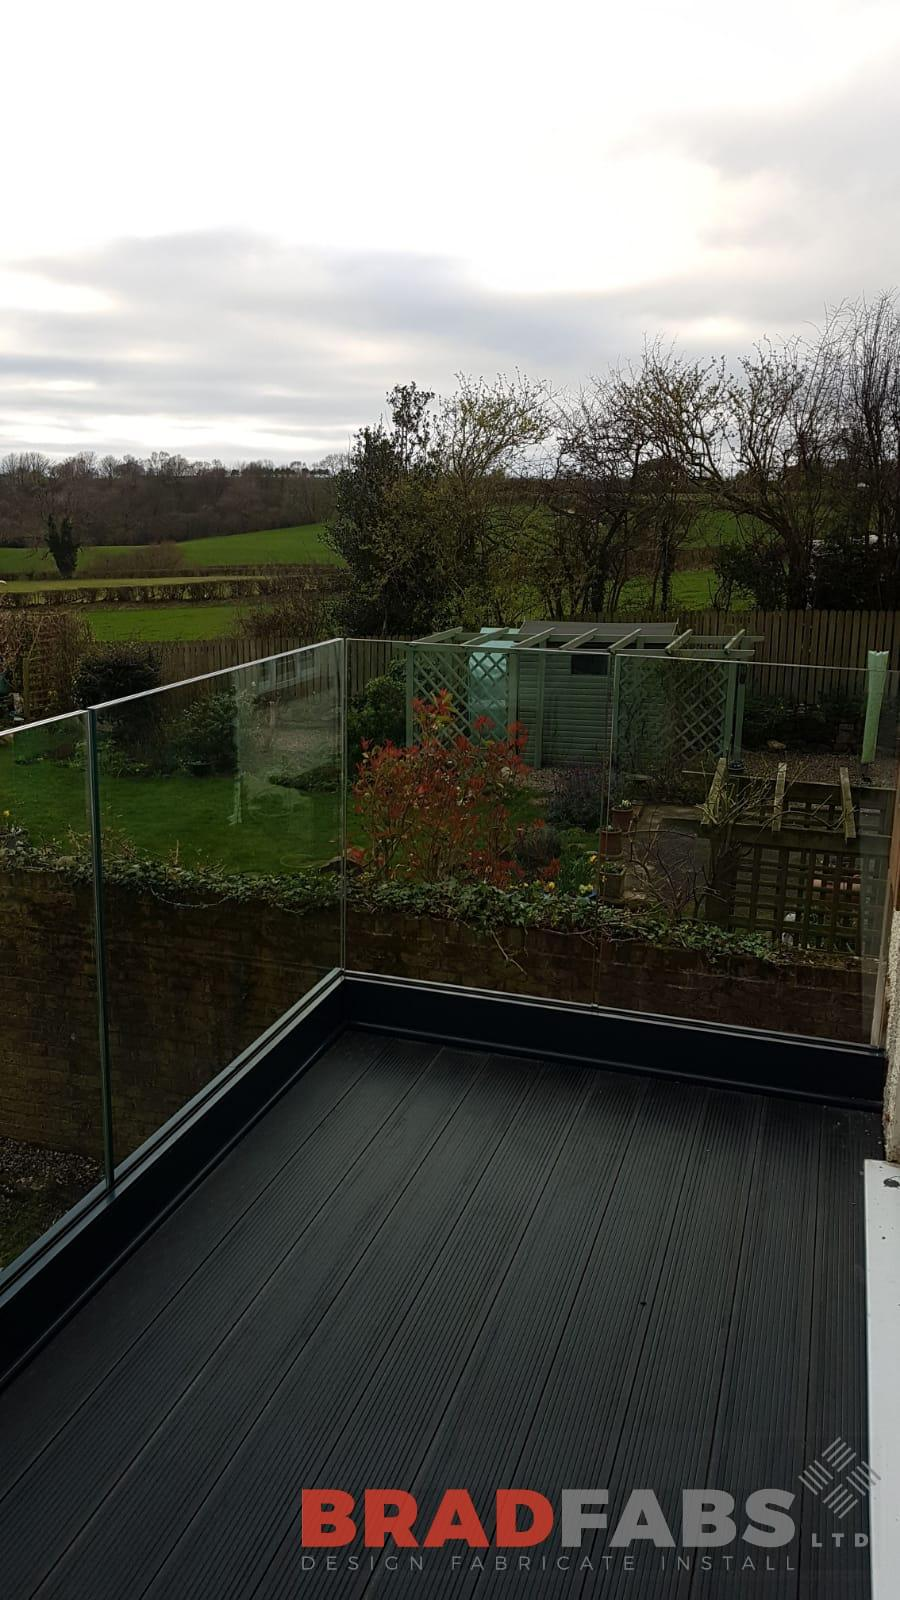 Our customers breathtaking views with perfect finish infinity glass channel system balustrade by Bradfabs